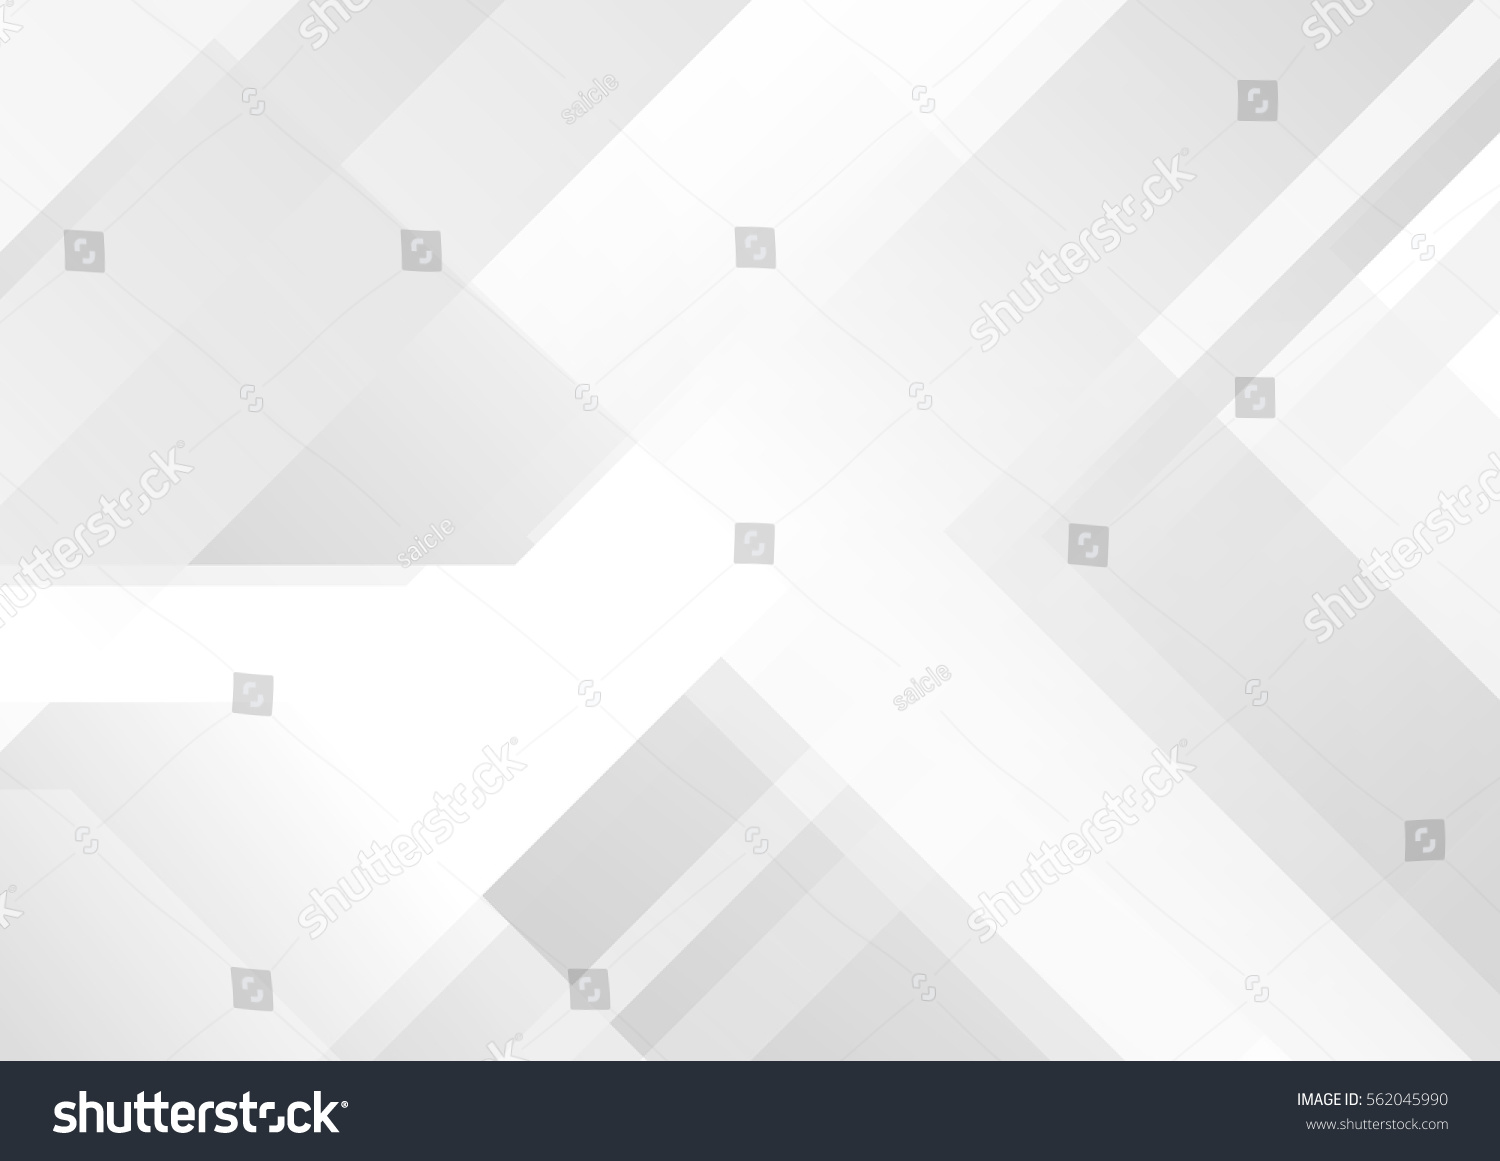 Abstract grey and white tech geometric corporate design background  eps 10 #562045990